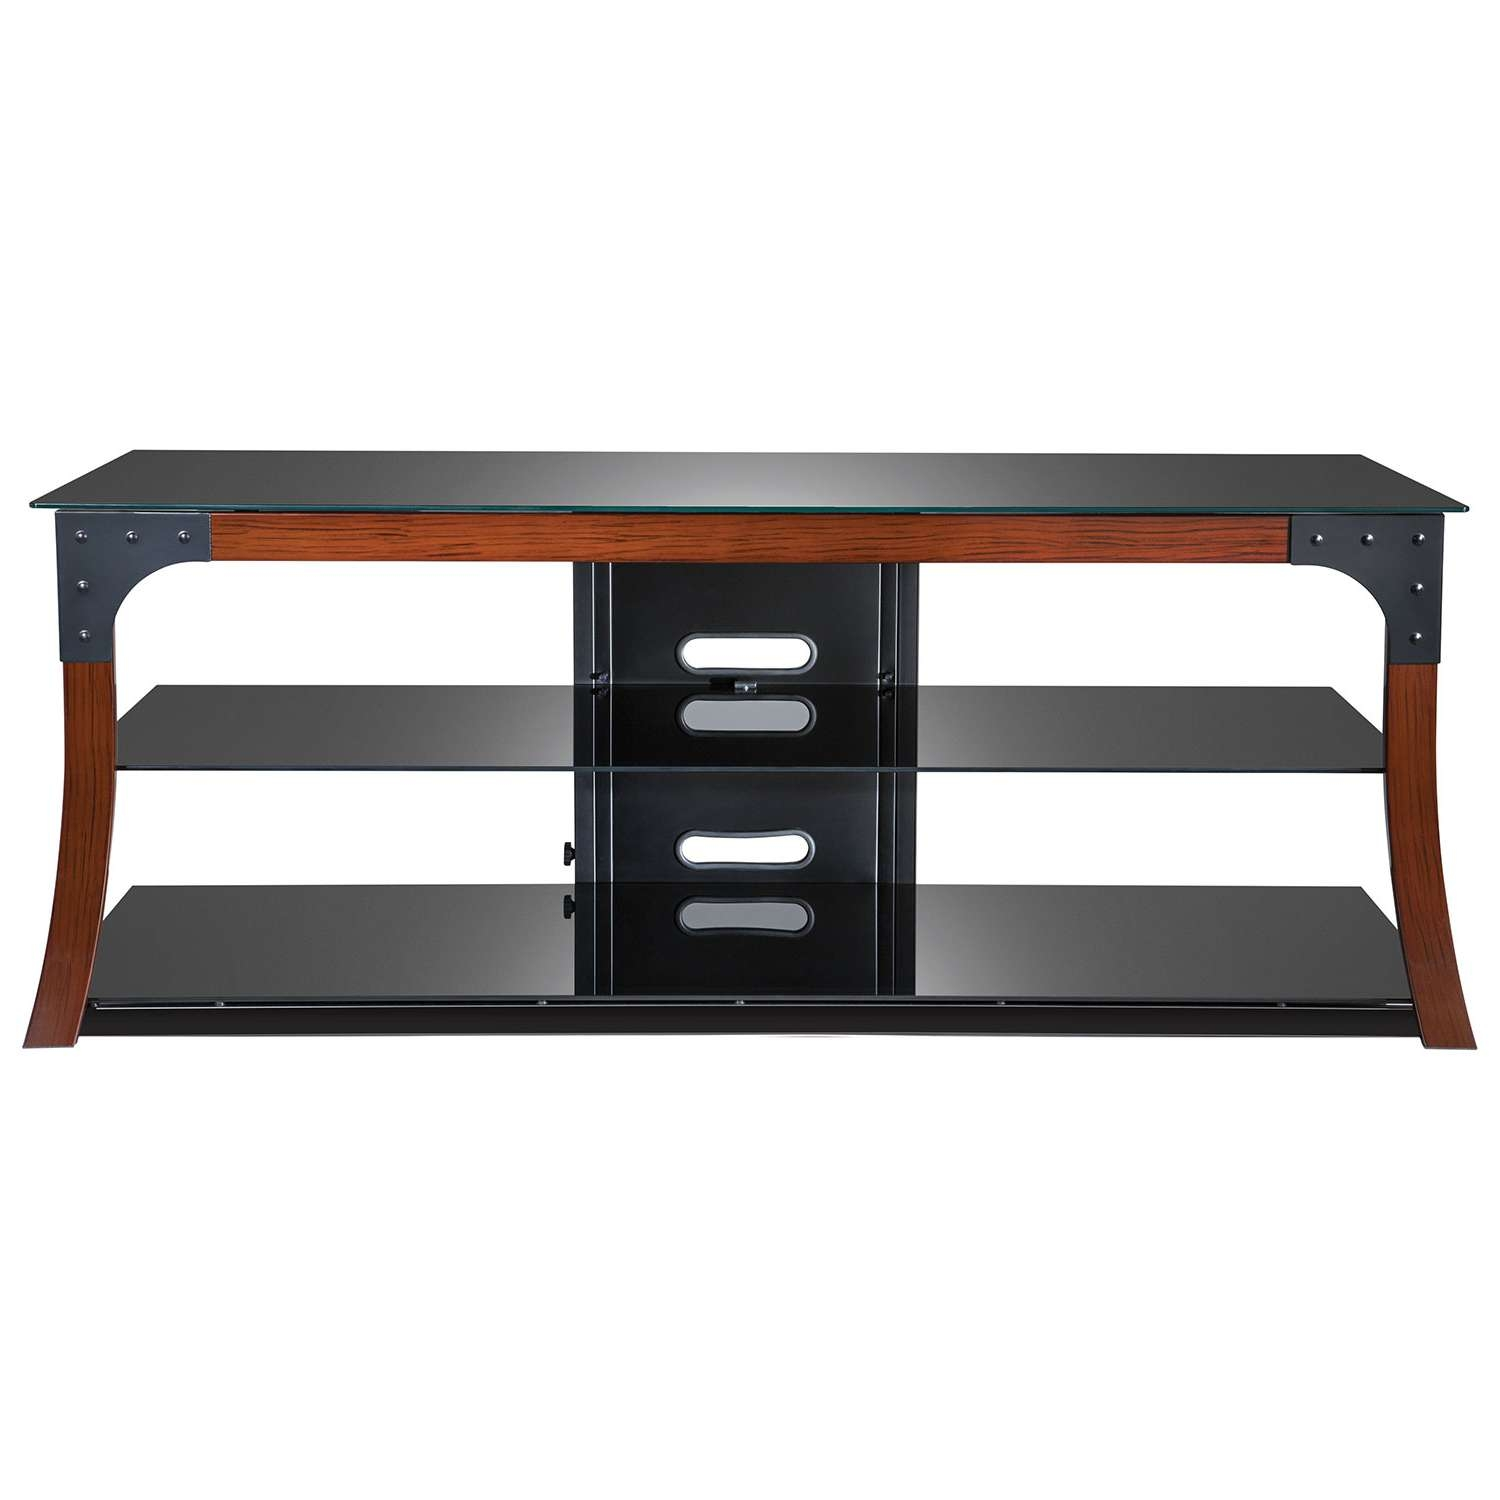 Tv Stands – Corner & Fireplace Tv Stands – Best Buy Canada Within Rustic 60 Inch Tv Stands (View 12 of 15)